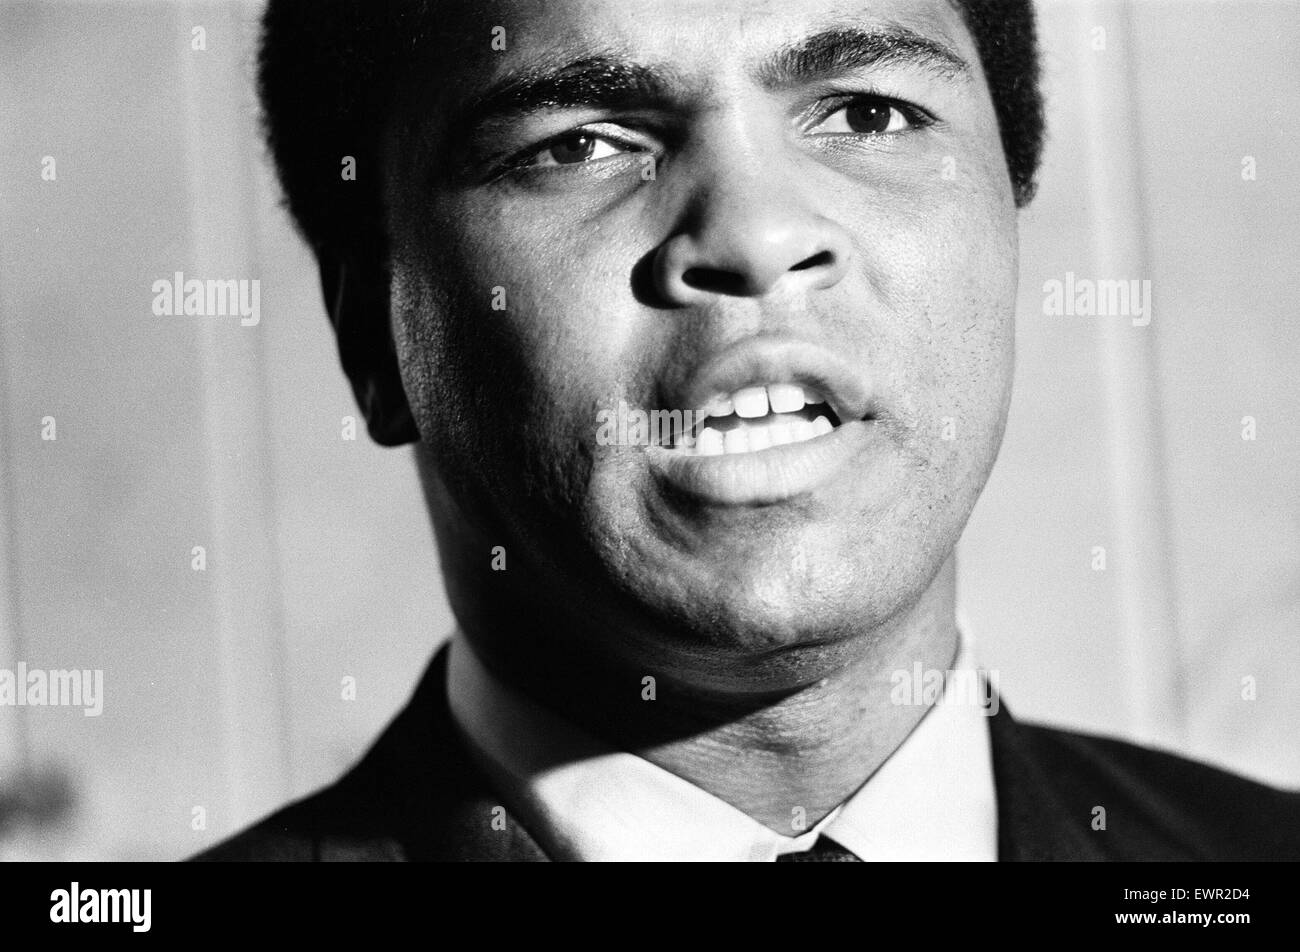 Muhammad Ali at a supermarket in Stretford to promoting the drink Ovaltine. 11th October 1971 - Stock Image